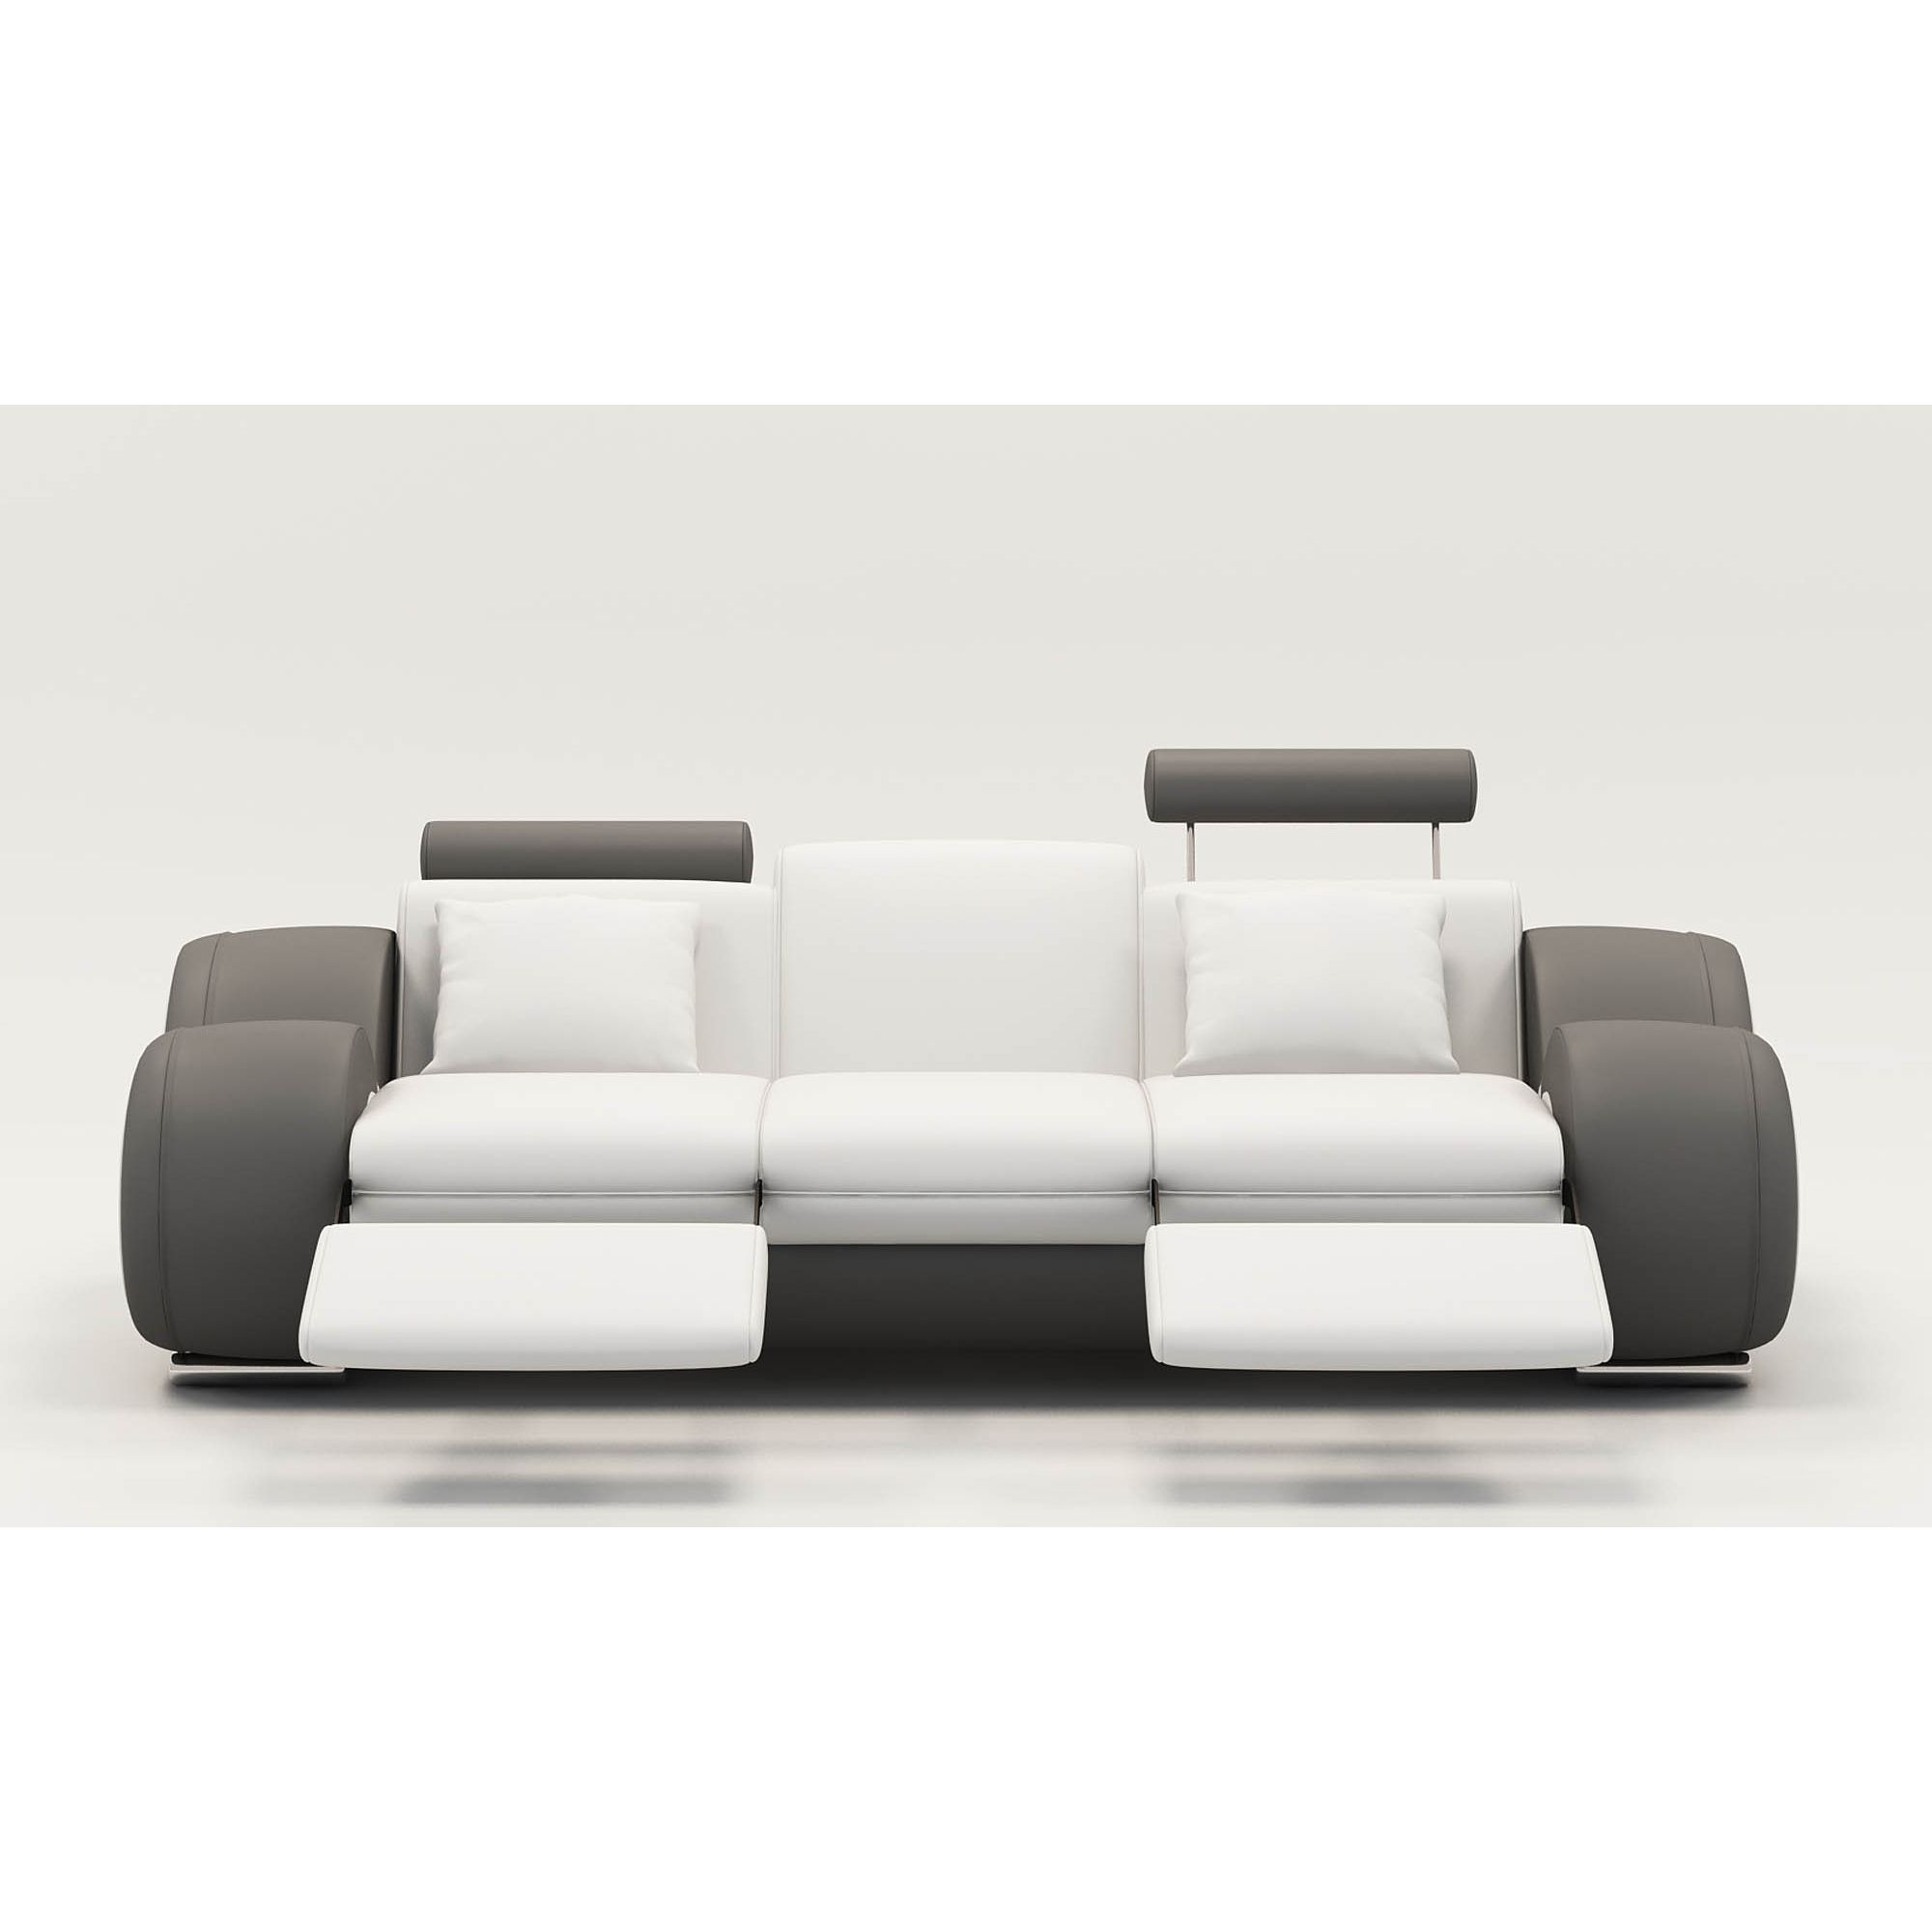 Deco in paris 9 canape design 3 places cuir blanc et - Canape cuir blanc relax ...